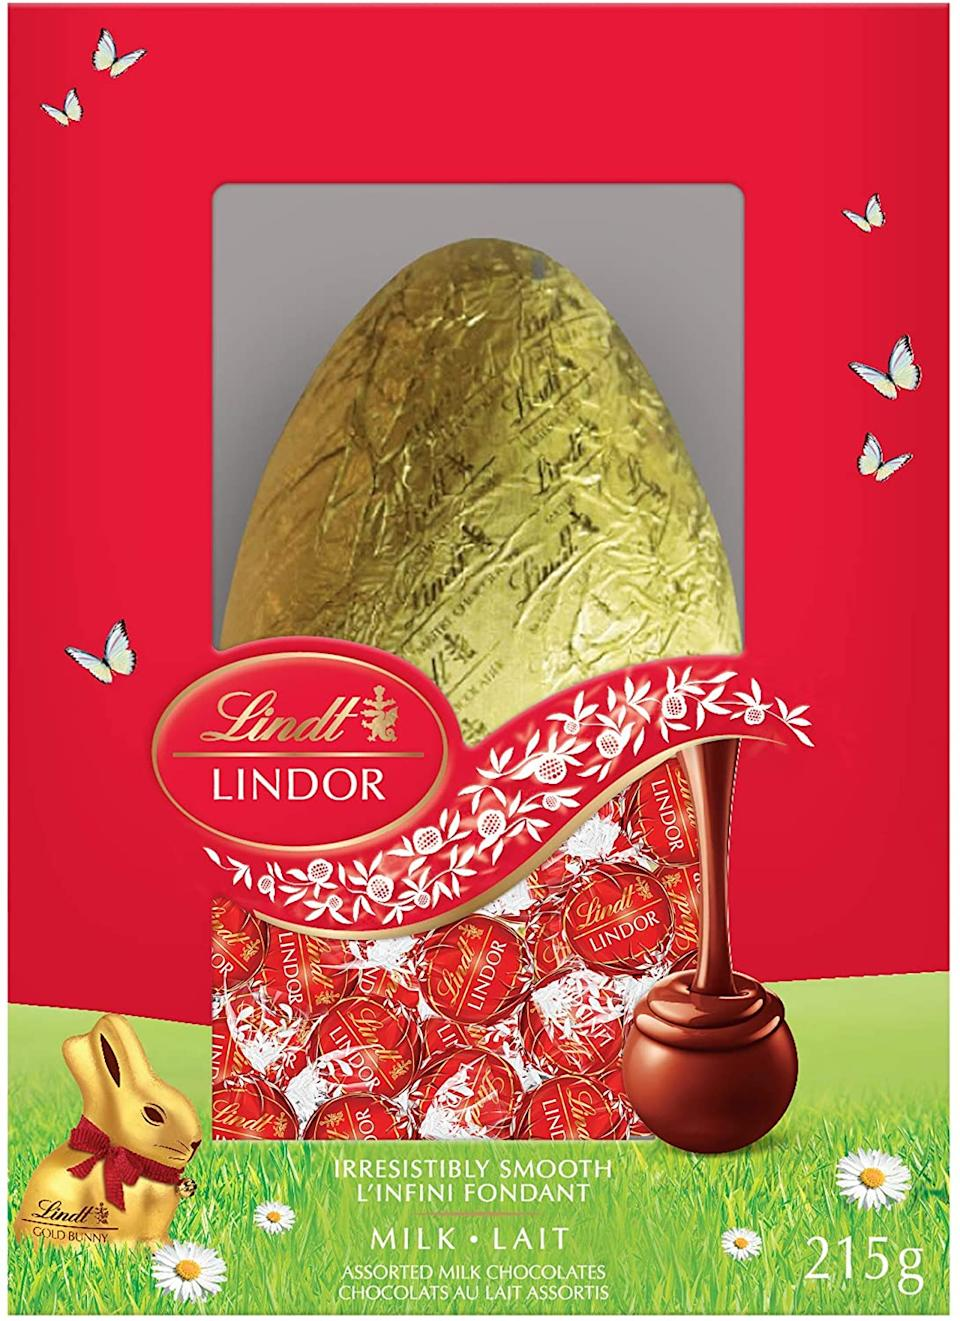 Lindt Lindor Egg Gift Box. Image via Amazon.